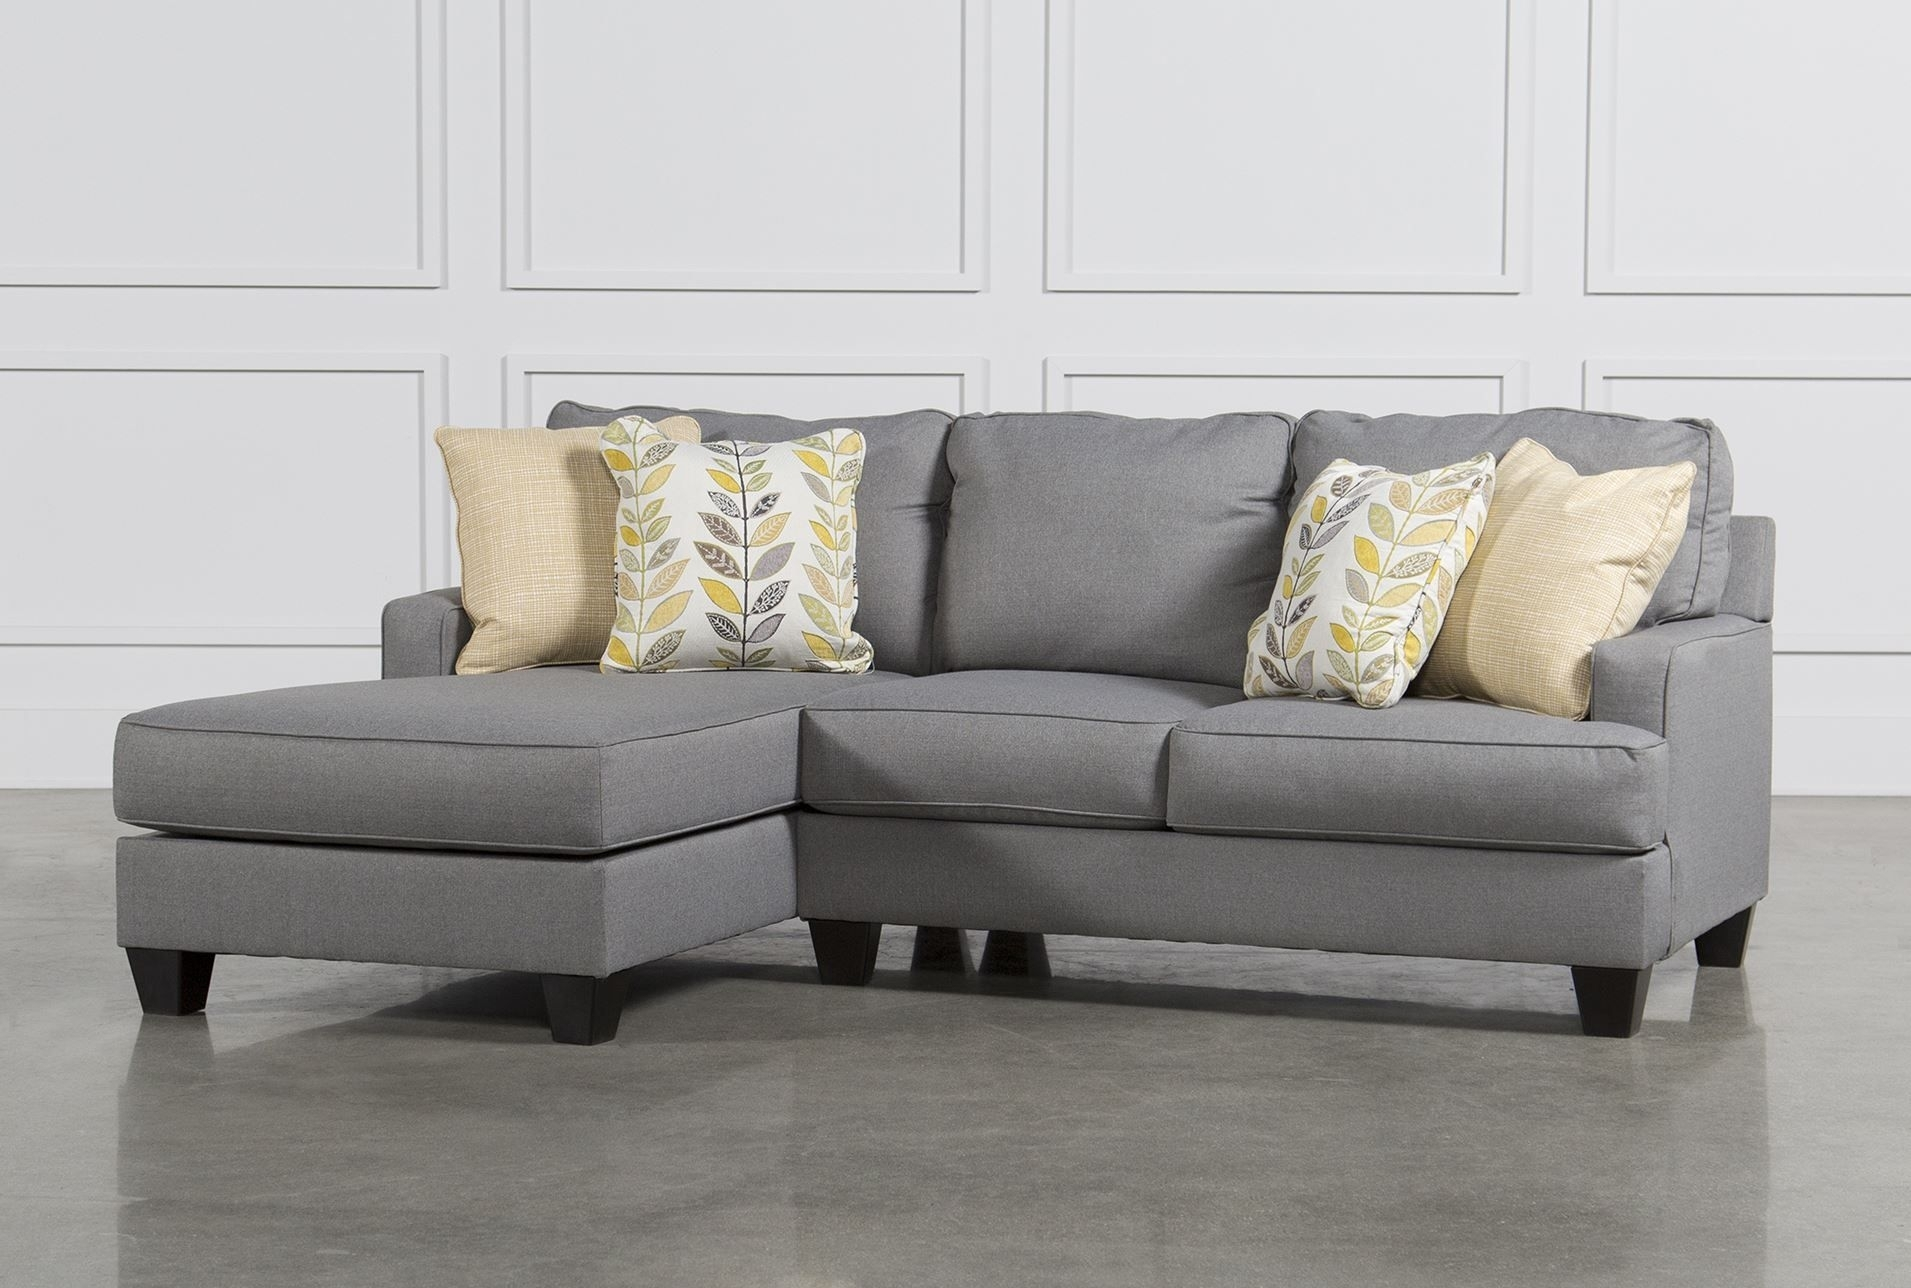 Chamberly 2 Piece Sectional W/laf Chaise – Signature | Light Casual Regarding Delano 2 Piece Sectionals With Laf Oversized Chaise (Image 6 of 25)